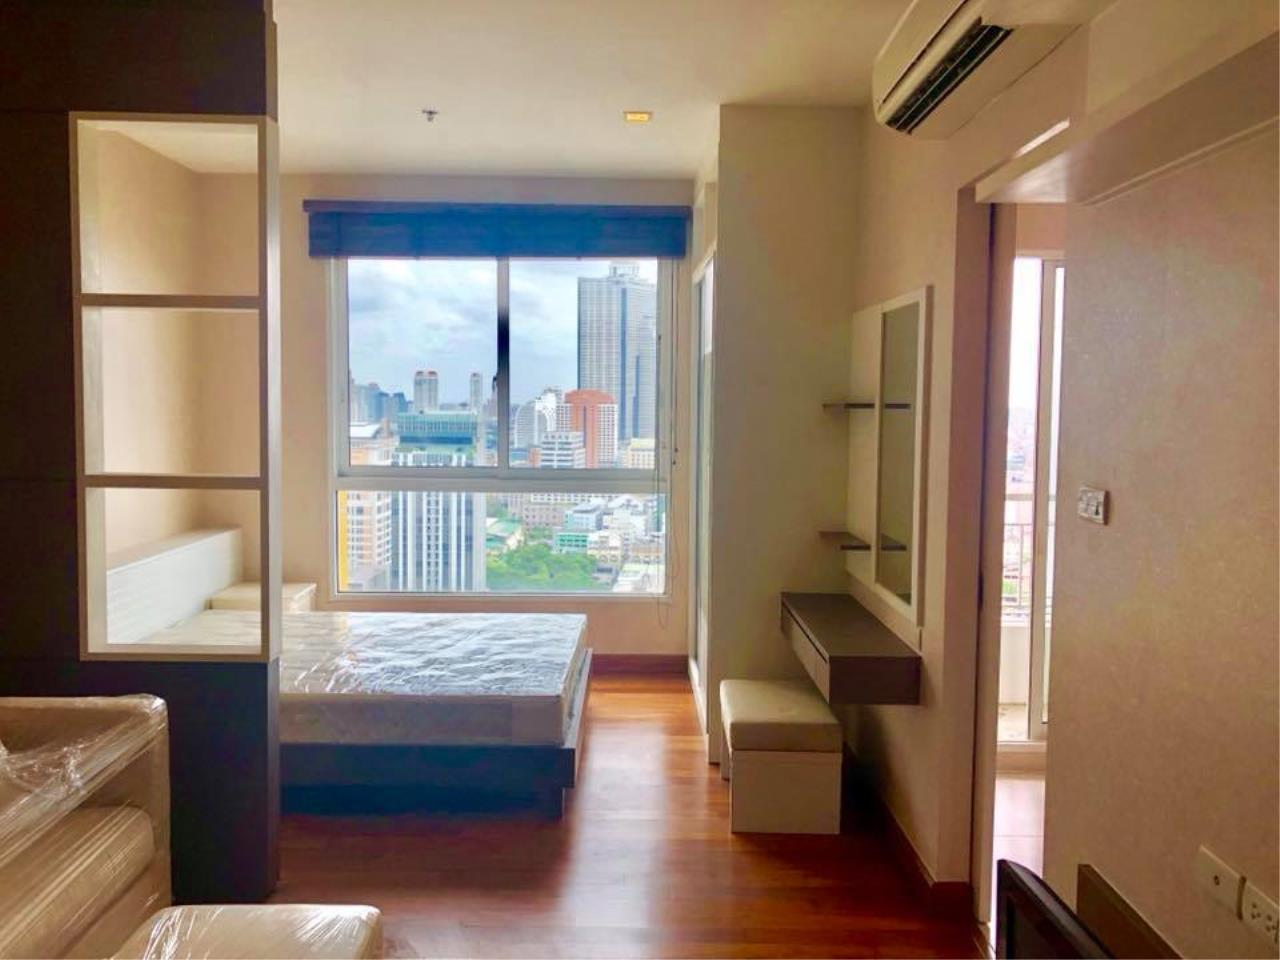 Quality Life Property Agency's S A L E !! || IVY SATHORN 10|| 1BR 33.64 Sq.m. NEW UNIT!! 3